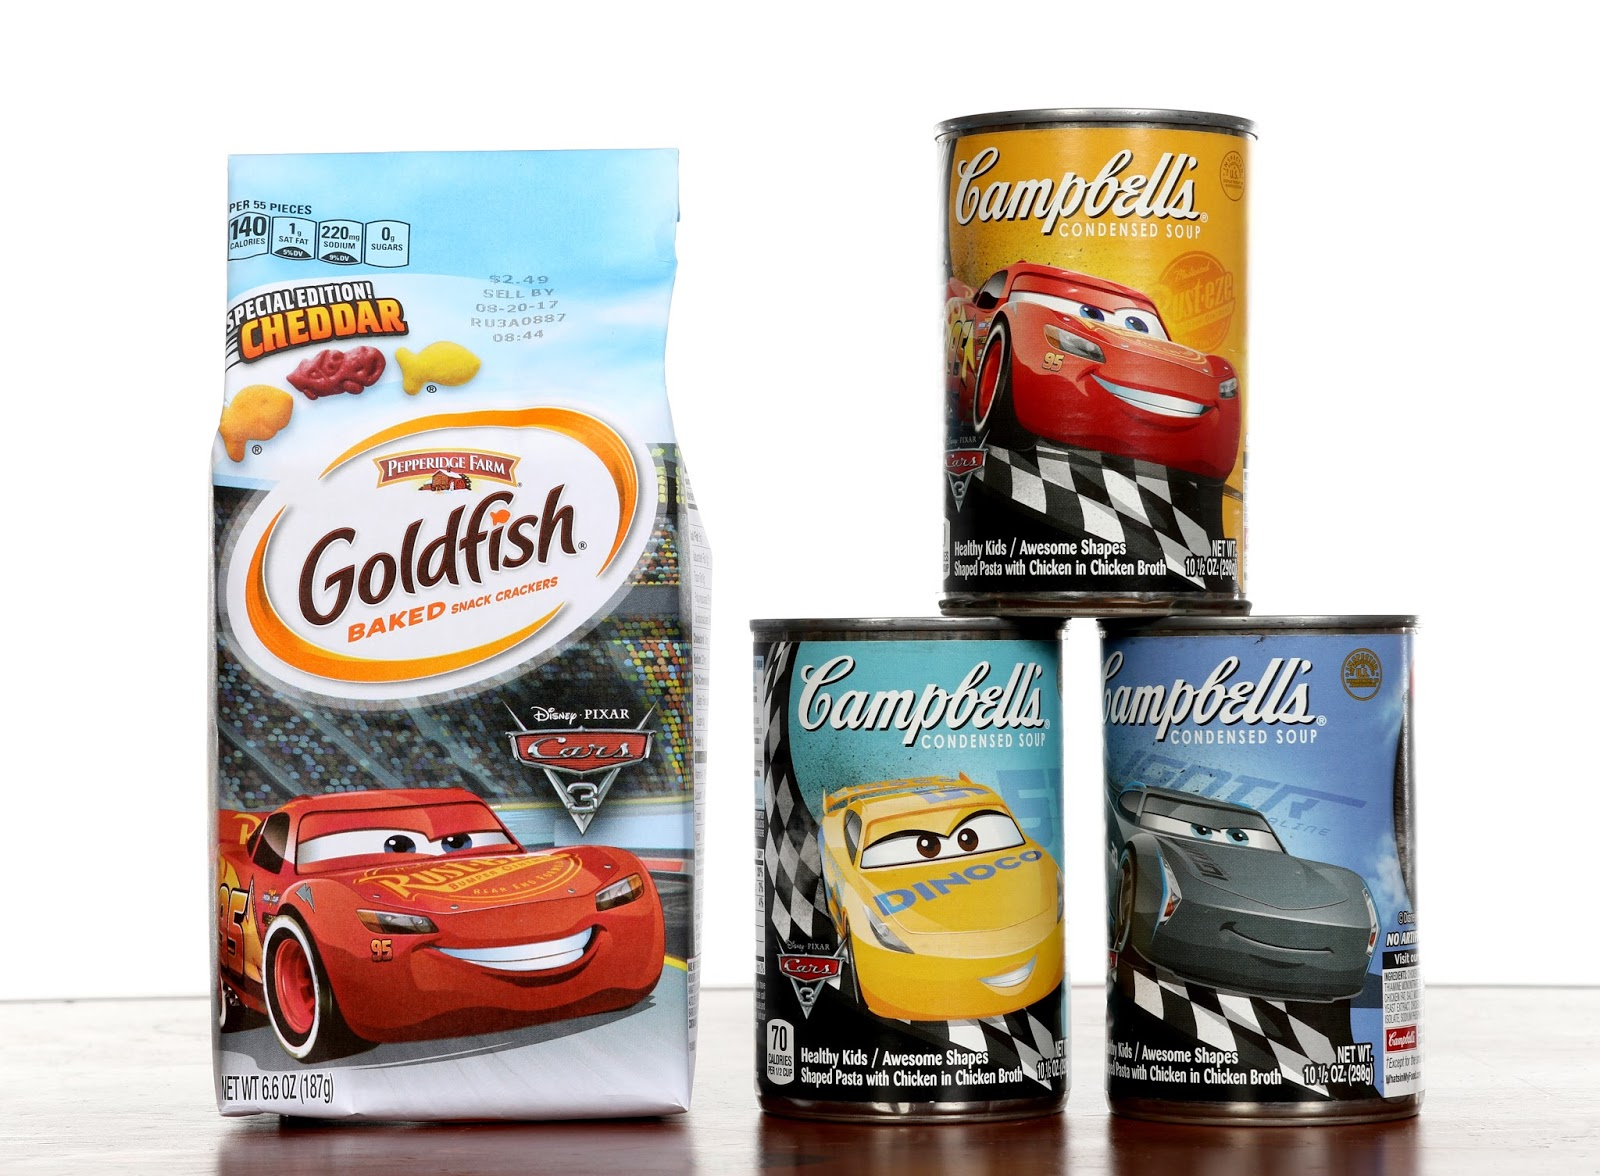 disney pixar Cars 3 Pepperidge Farm Goldfish & Campbell's Soup